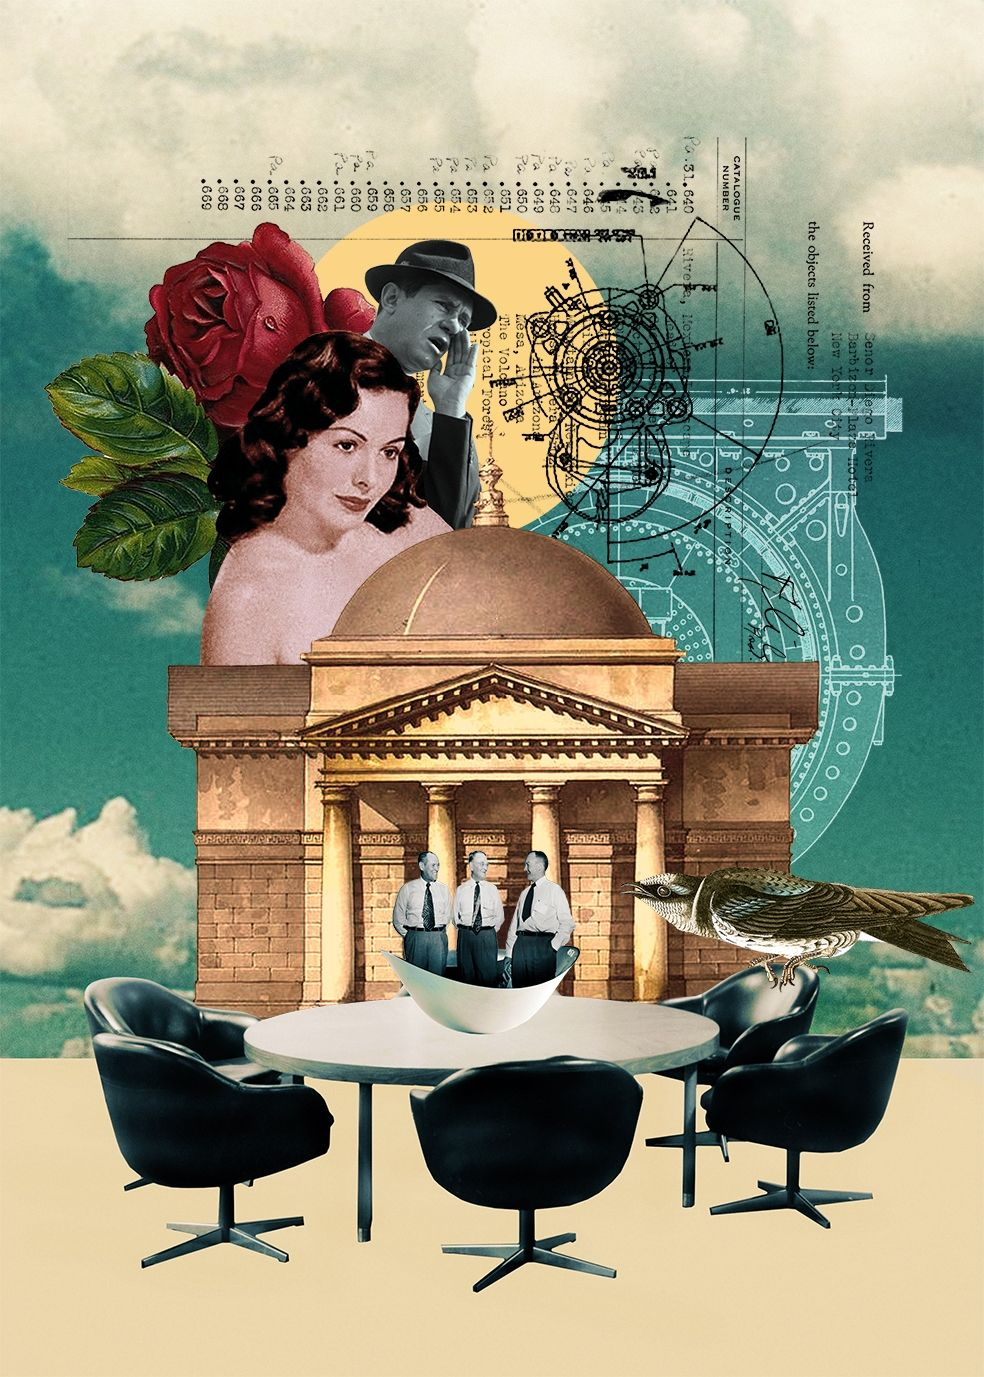 Bizarre collage art inspired by surrealism the pop art